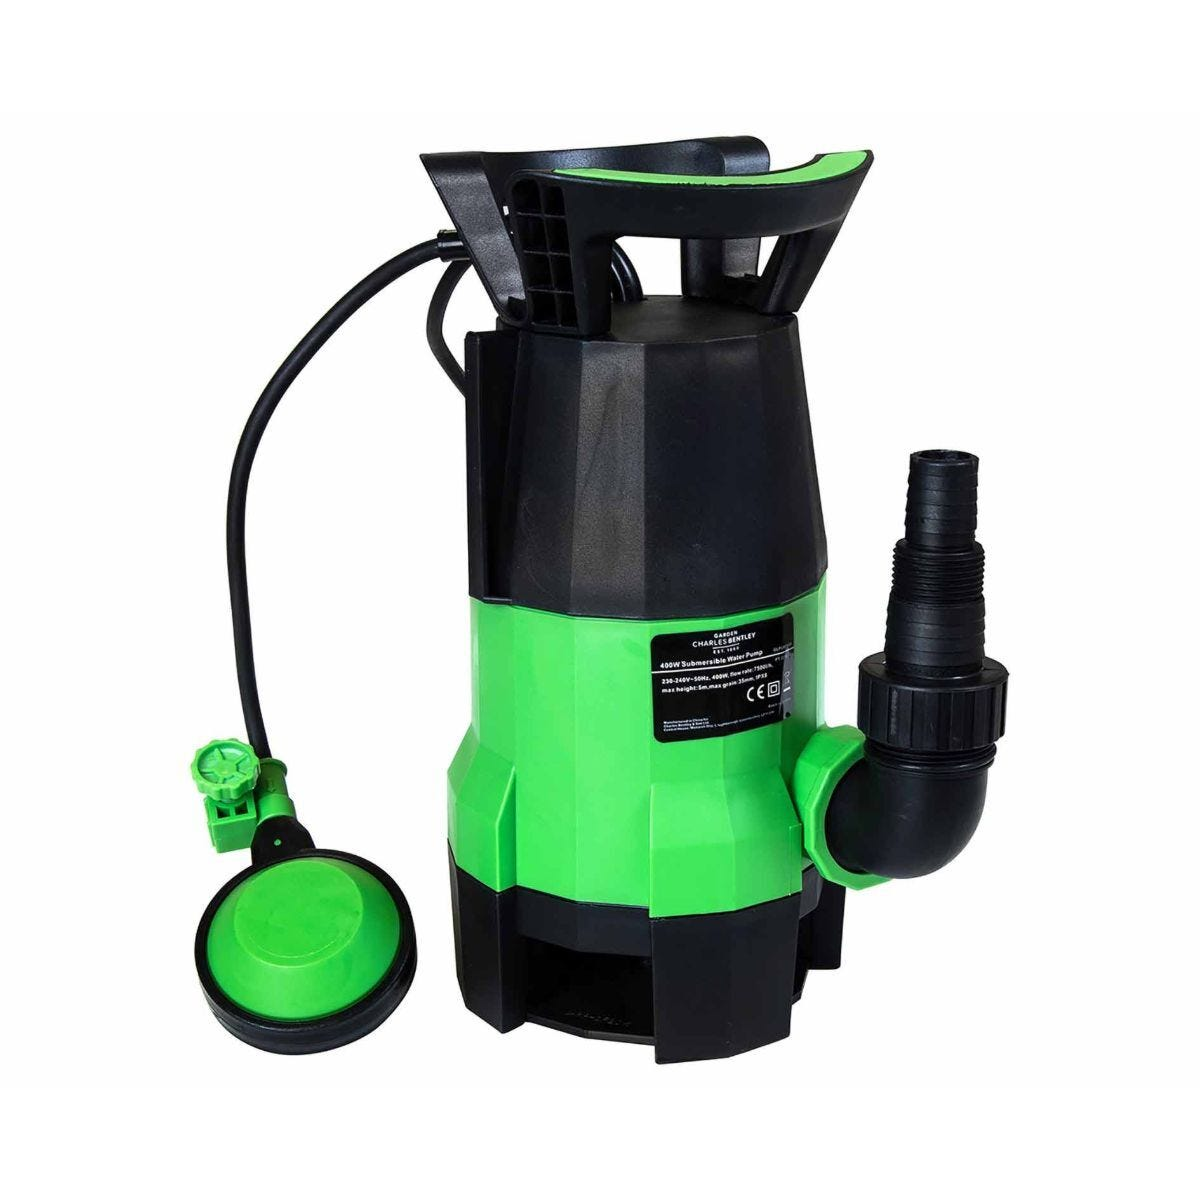 Charles Bentley Electric Submersible Water Pump 400W